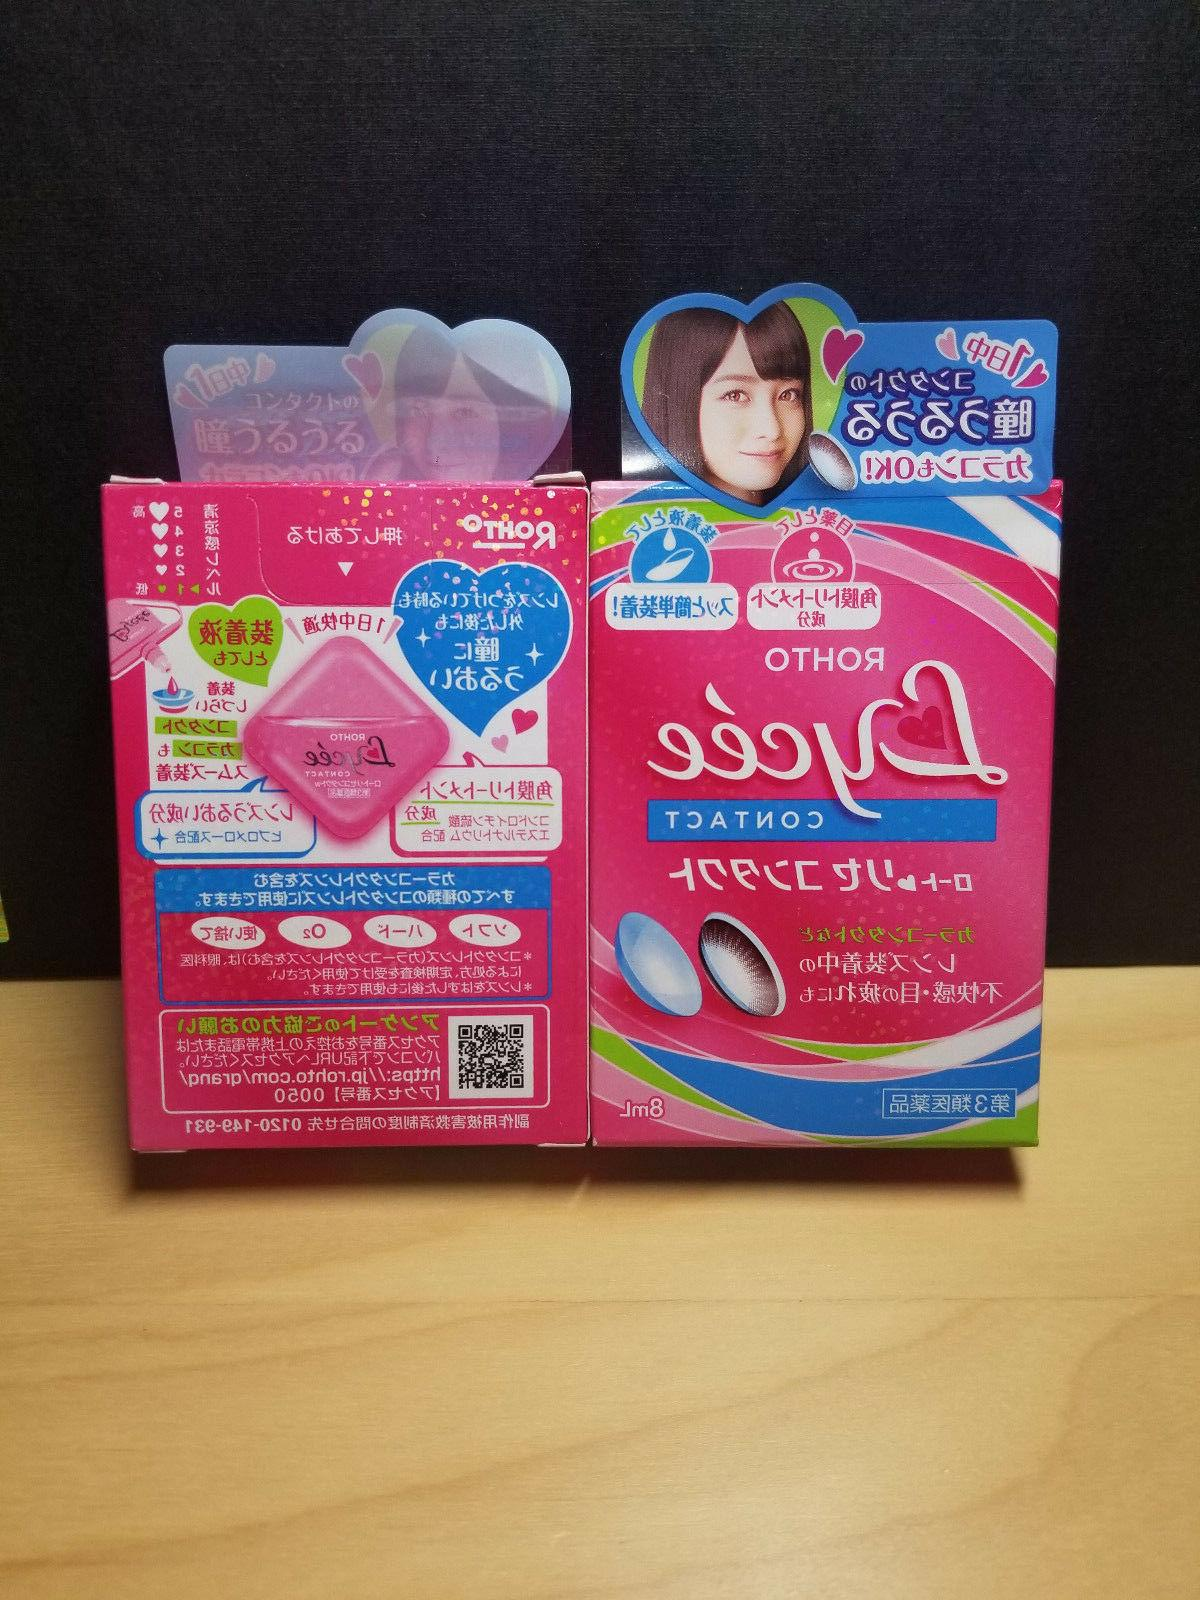 lycee rewetting contact eye drops from japan